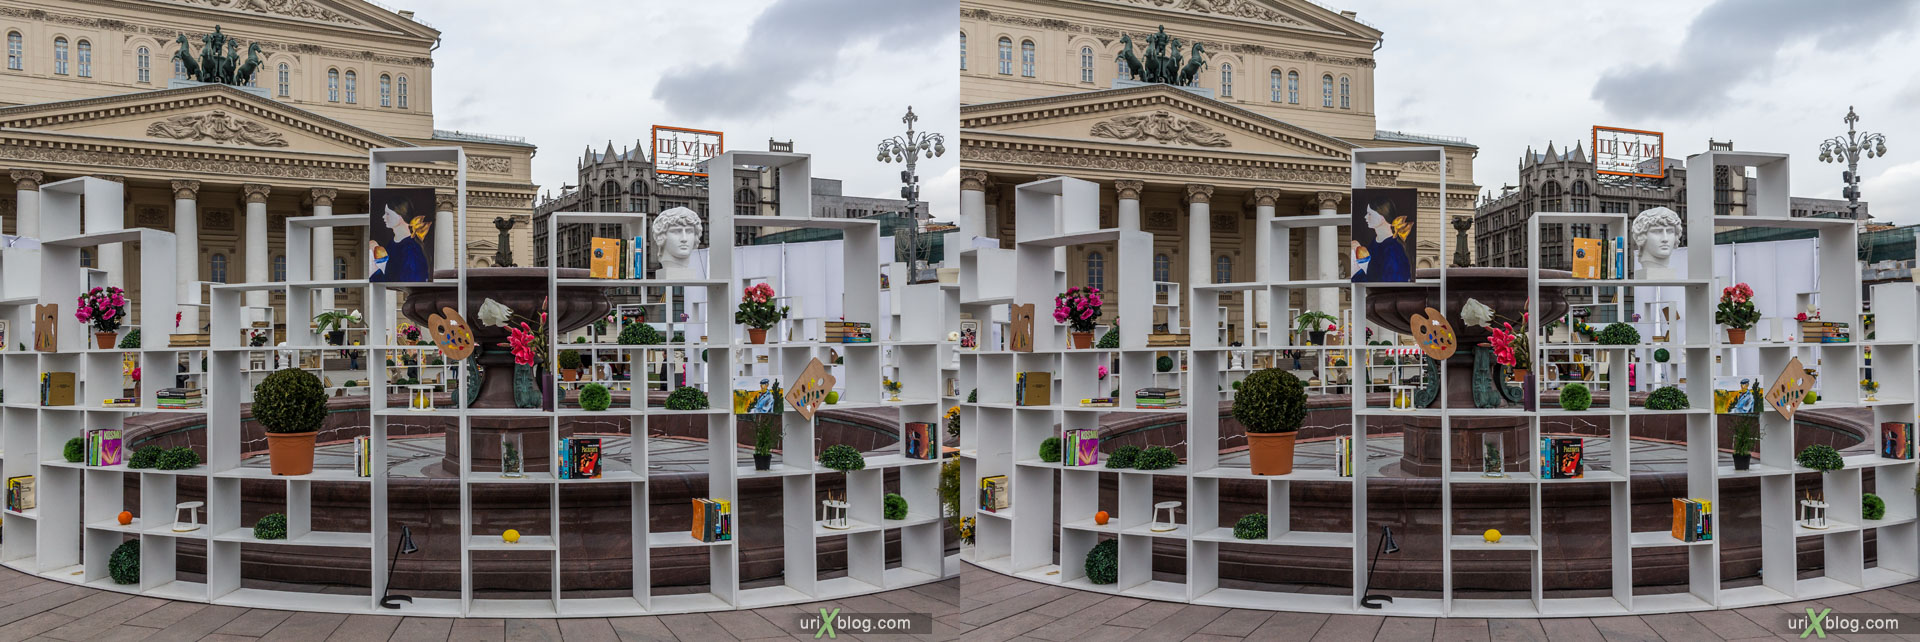 Theatre square, Moscow, Russia, 3D, stereo pair, cross-eyed, crossview, cross view stereo pair, stereoscopic, 2015